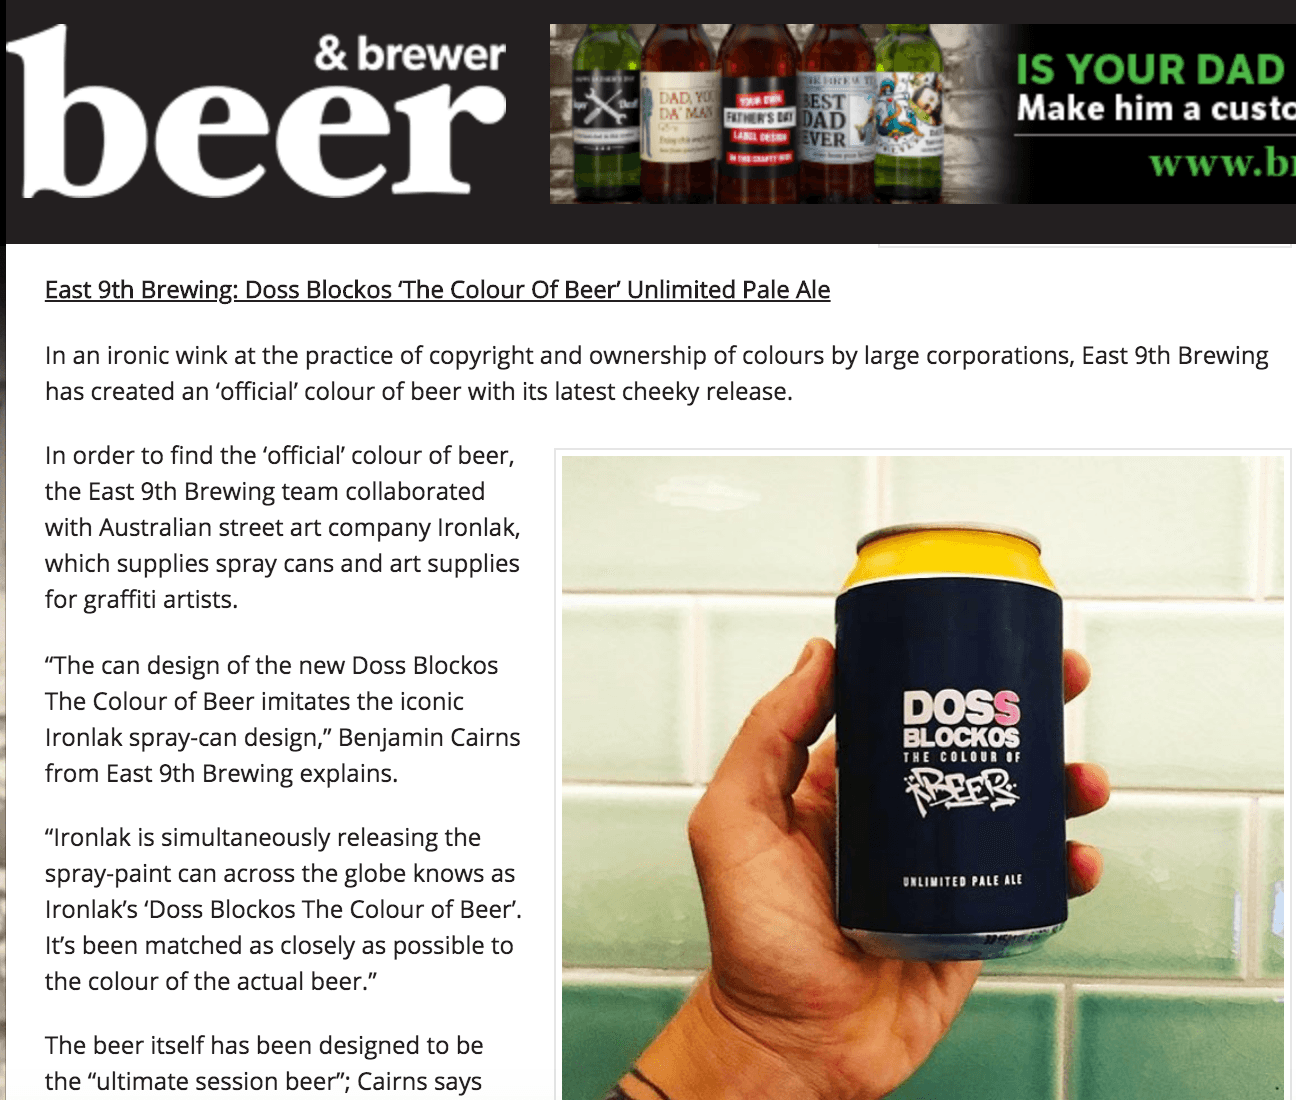 East 9th Brewing: Doss Blockos 'The Colour Of Beer